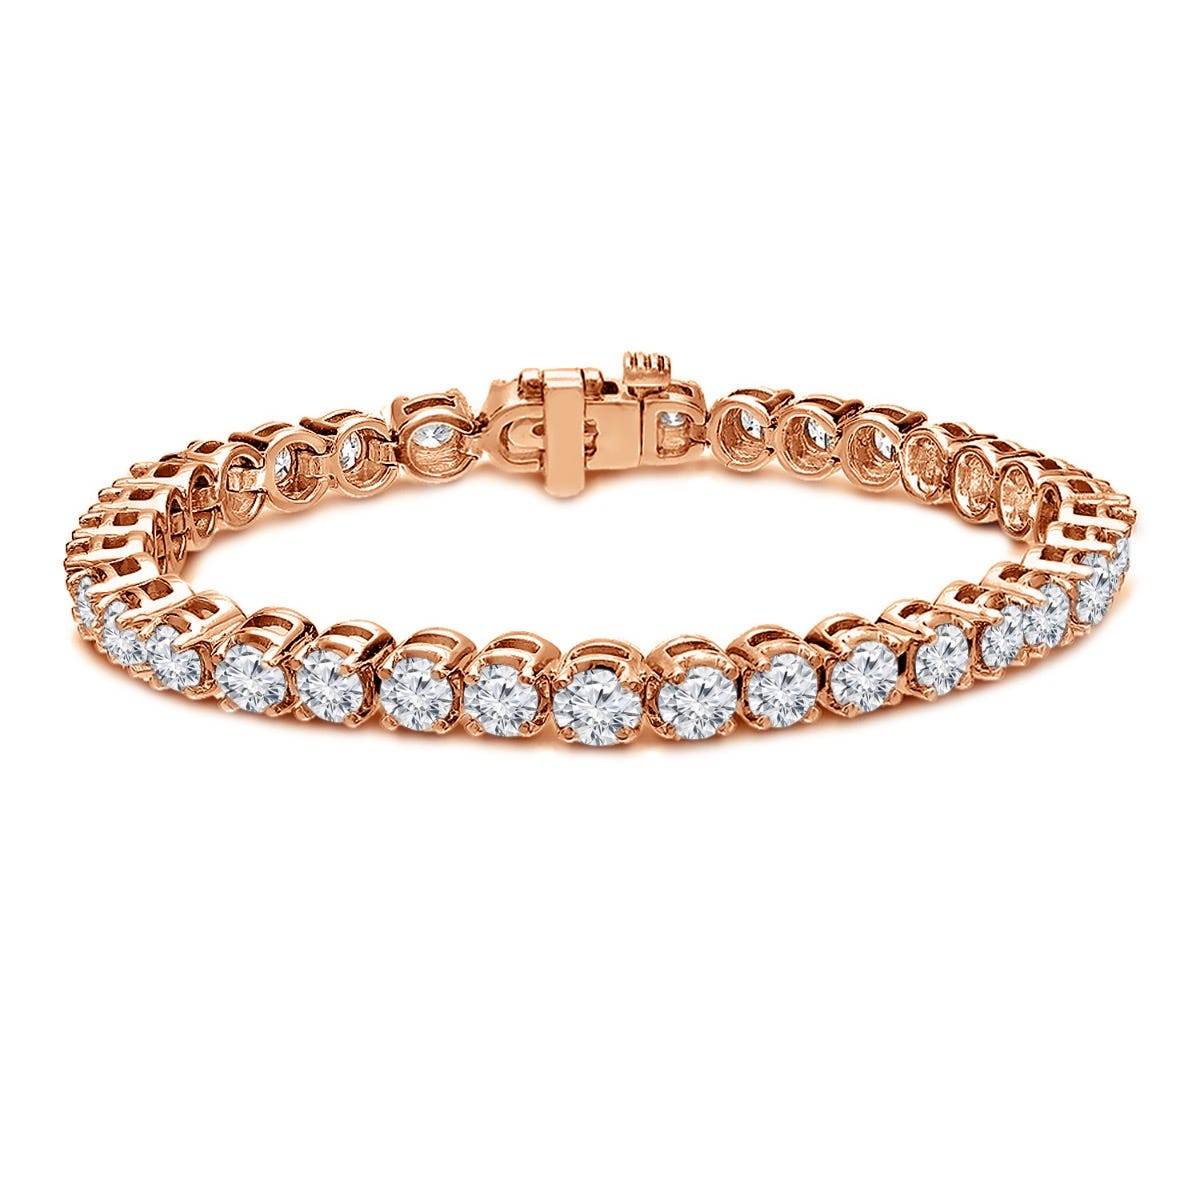 11ctw. 4-Prong Round Link Diamond Tennis Bracelet in 14K Rose Gold (JK, I2-I3)